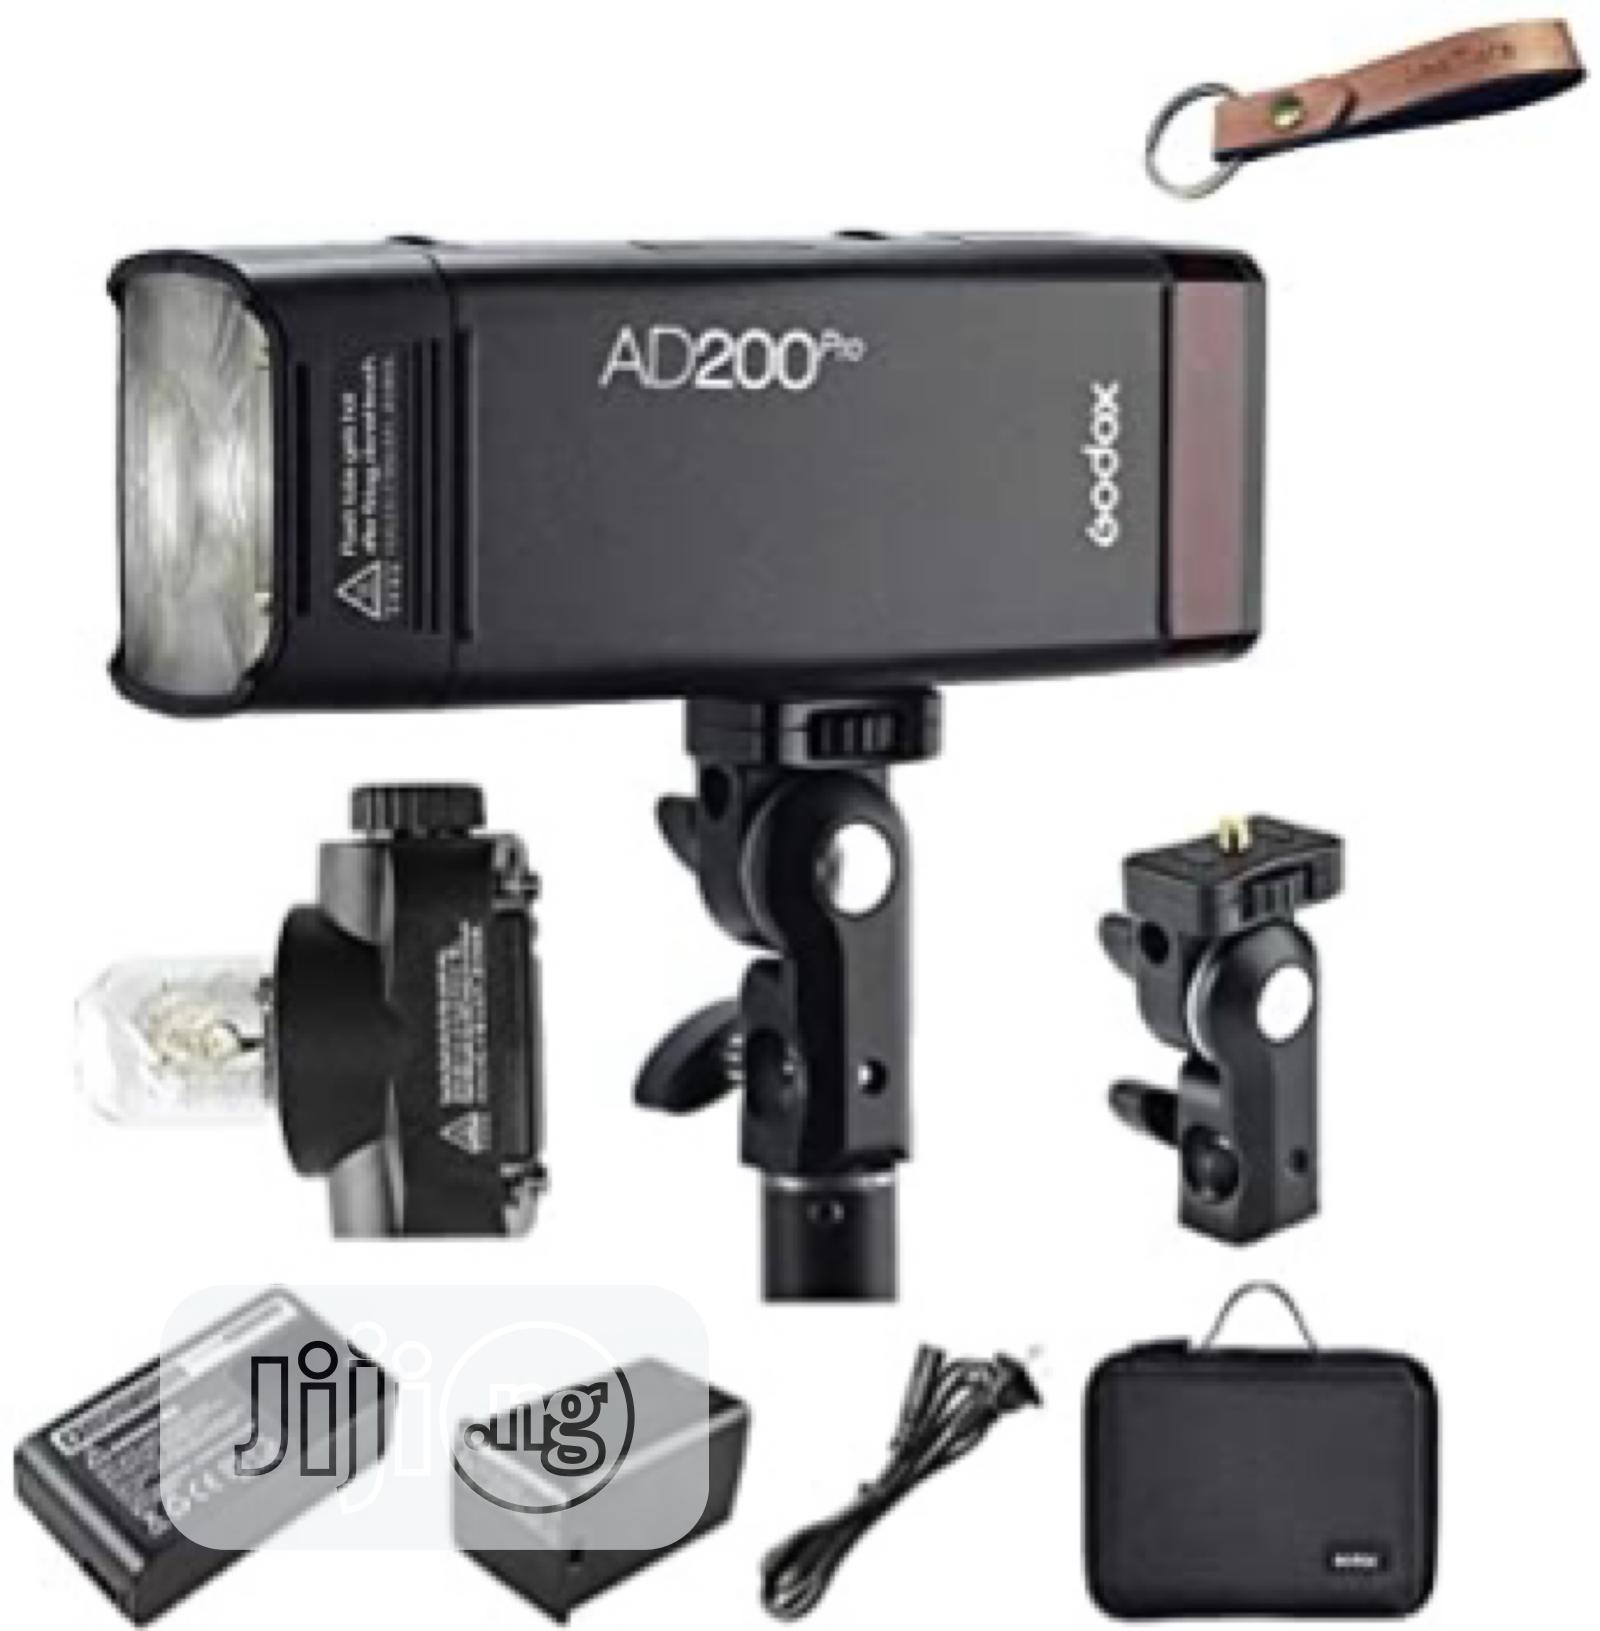 Godox Ad200pro Pocket Flash With Double Head, 2.4G Wireless | Accessories & Supplies for Electronics for sale in Oluyole, Oyo State, Nigeria